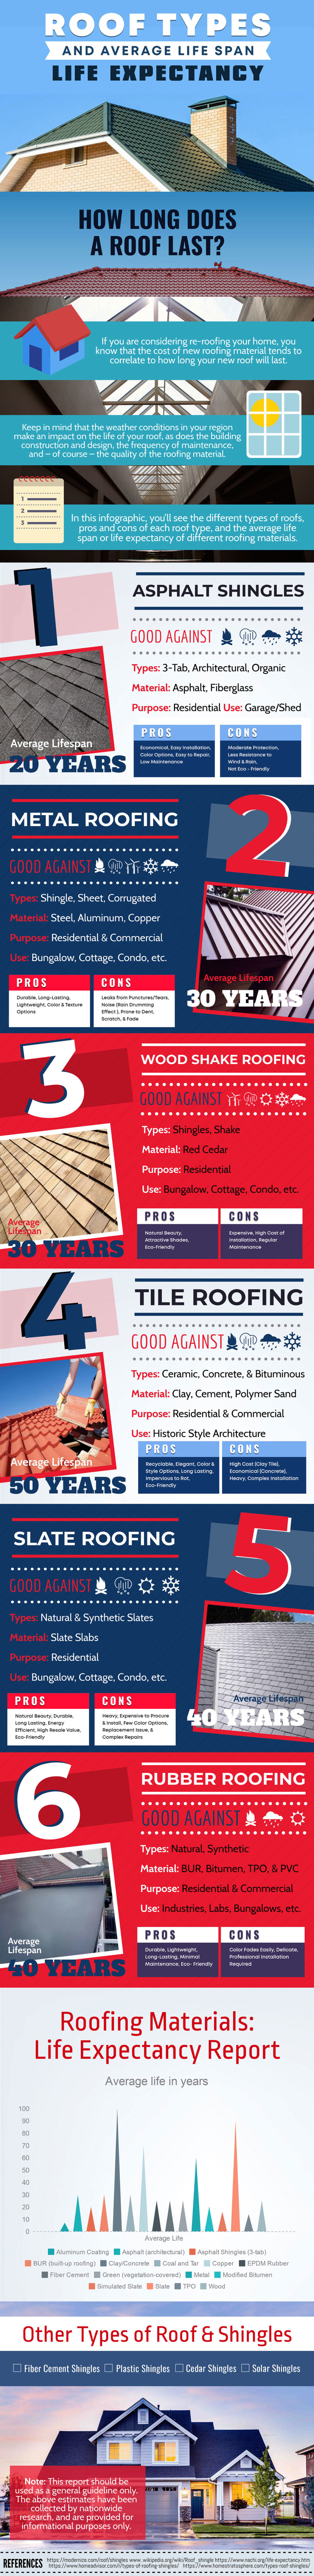 roof-types-and-average-lifespan